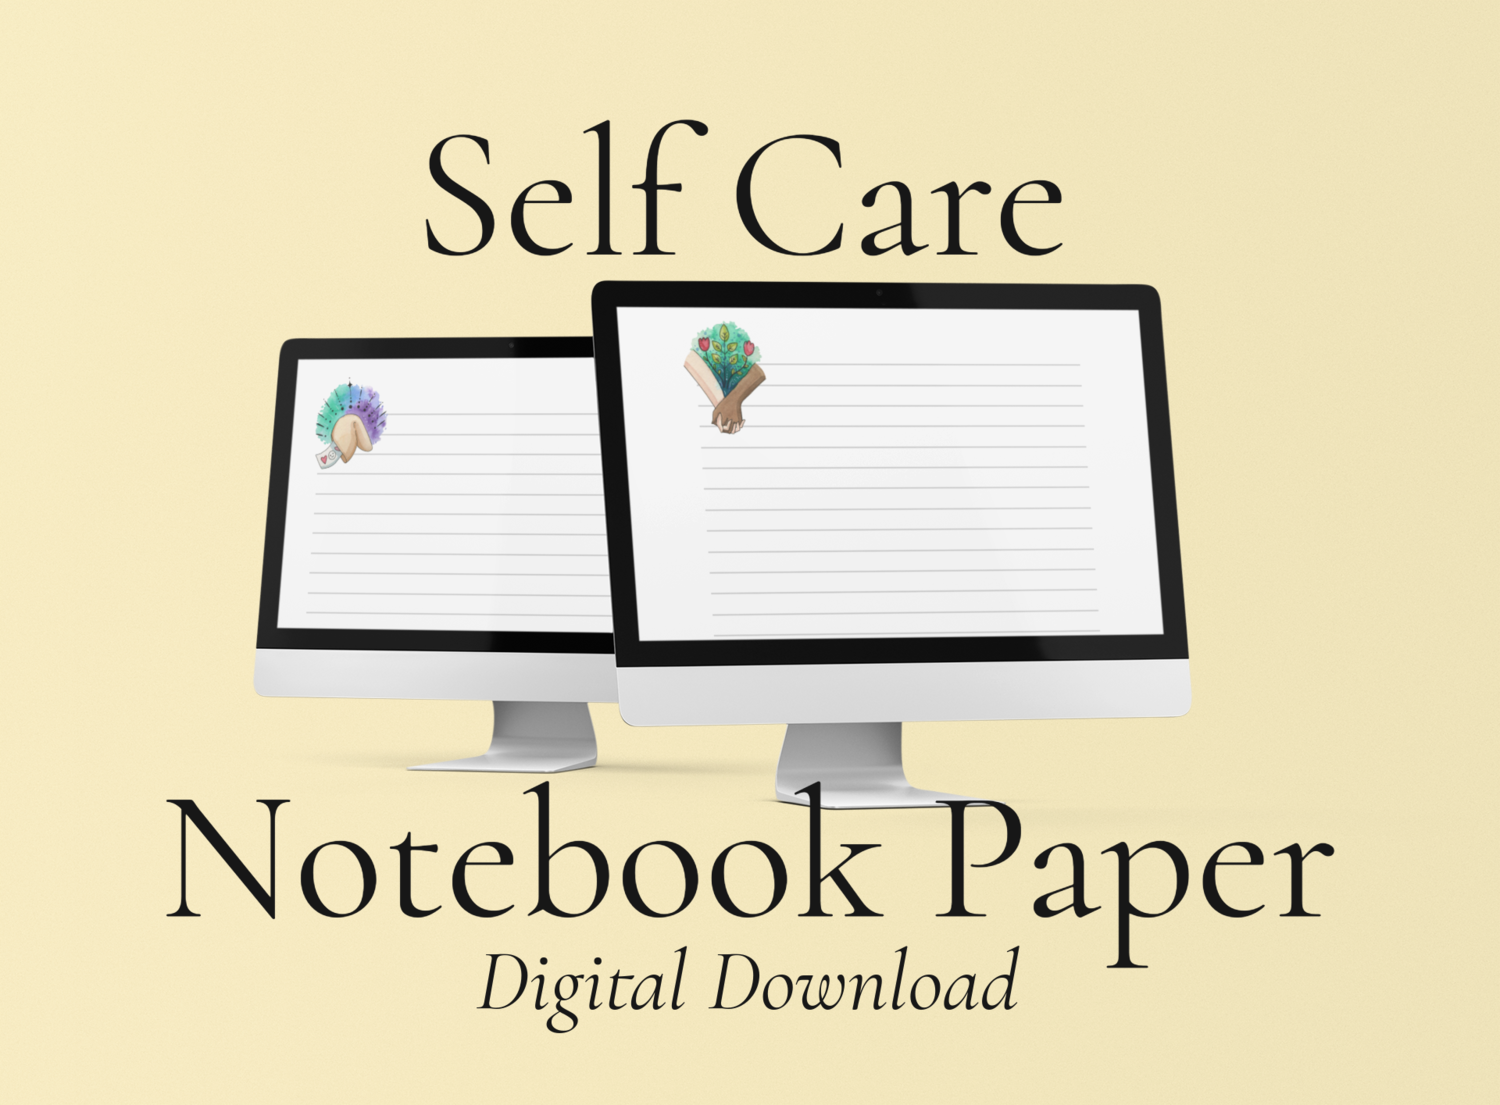 100 Pages of Self Care Notebook Paper: Digital Download